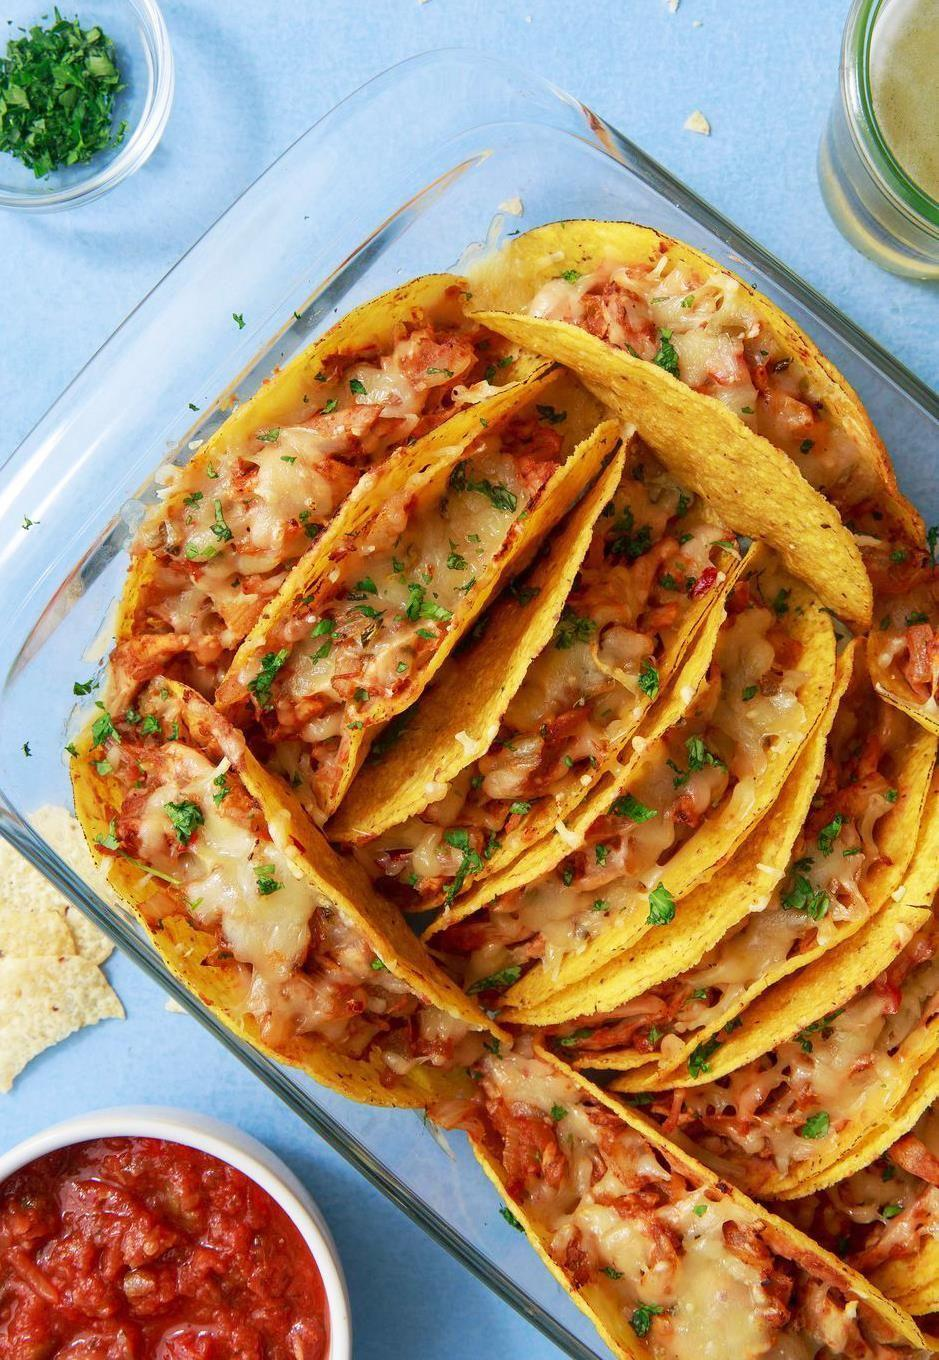 """<p>Taco Tuesday, on repeat.</p><p>Get the recipe from <a href=""""https://www.delish.com/cooking/recipe-ideas/recipes/a50265/cheesy-baked-tacos-recipe/"""" rel=""""nofollow noopener"""" target=""""_blank"""" data-ylk=""""slk:Delish"""" class=""""link rapid-noclick-resp"""">Delish</a>. </p>"""